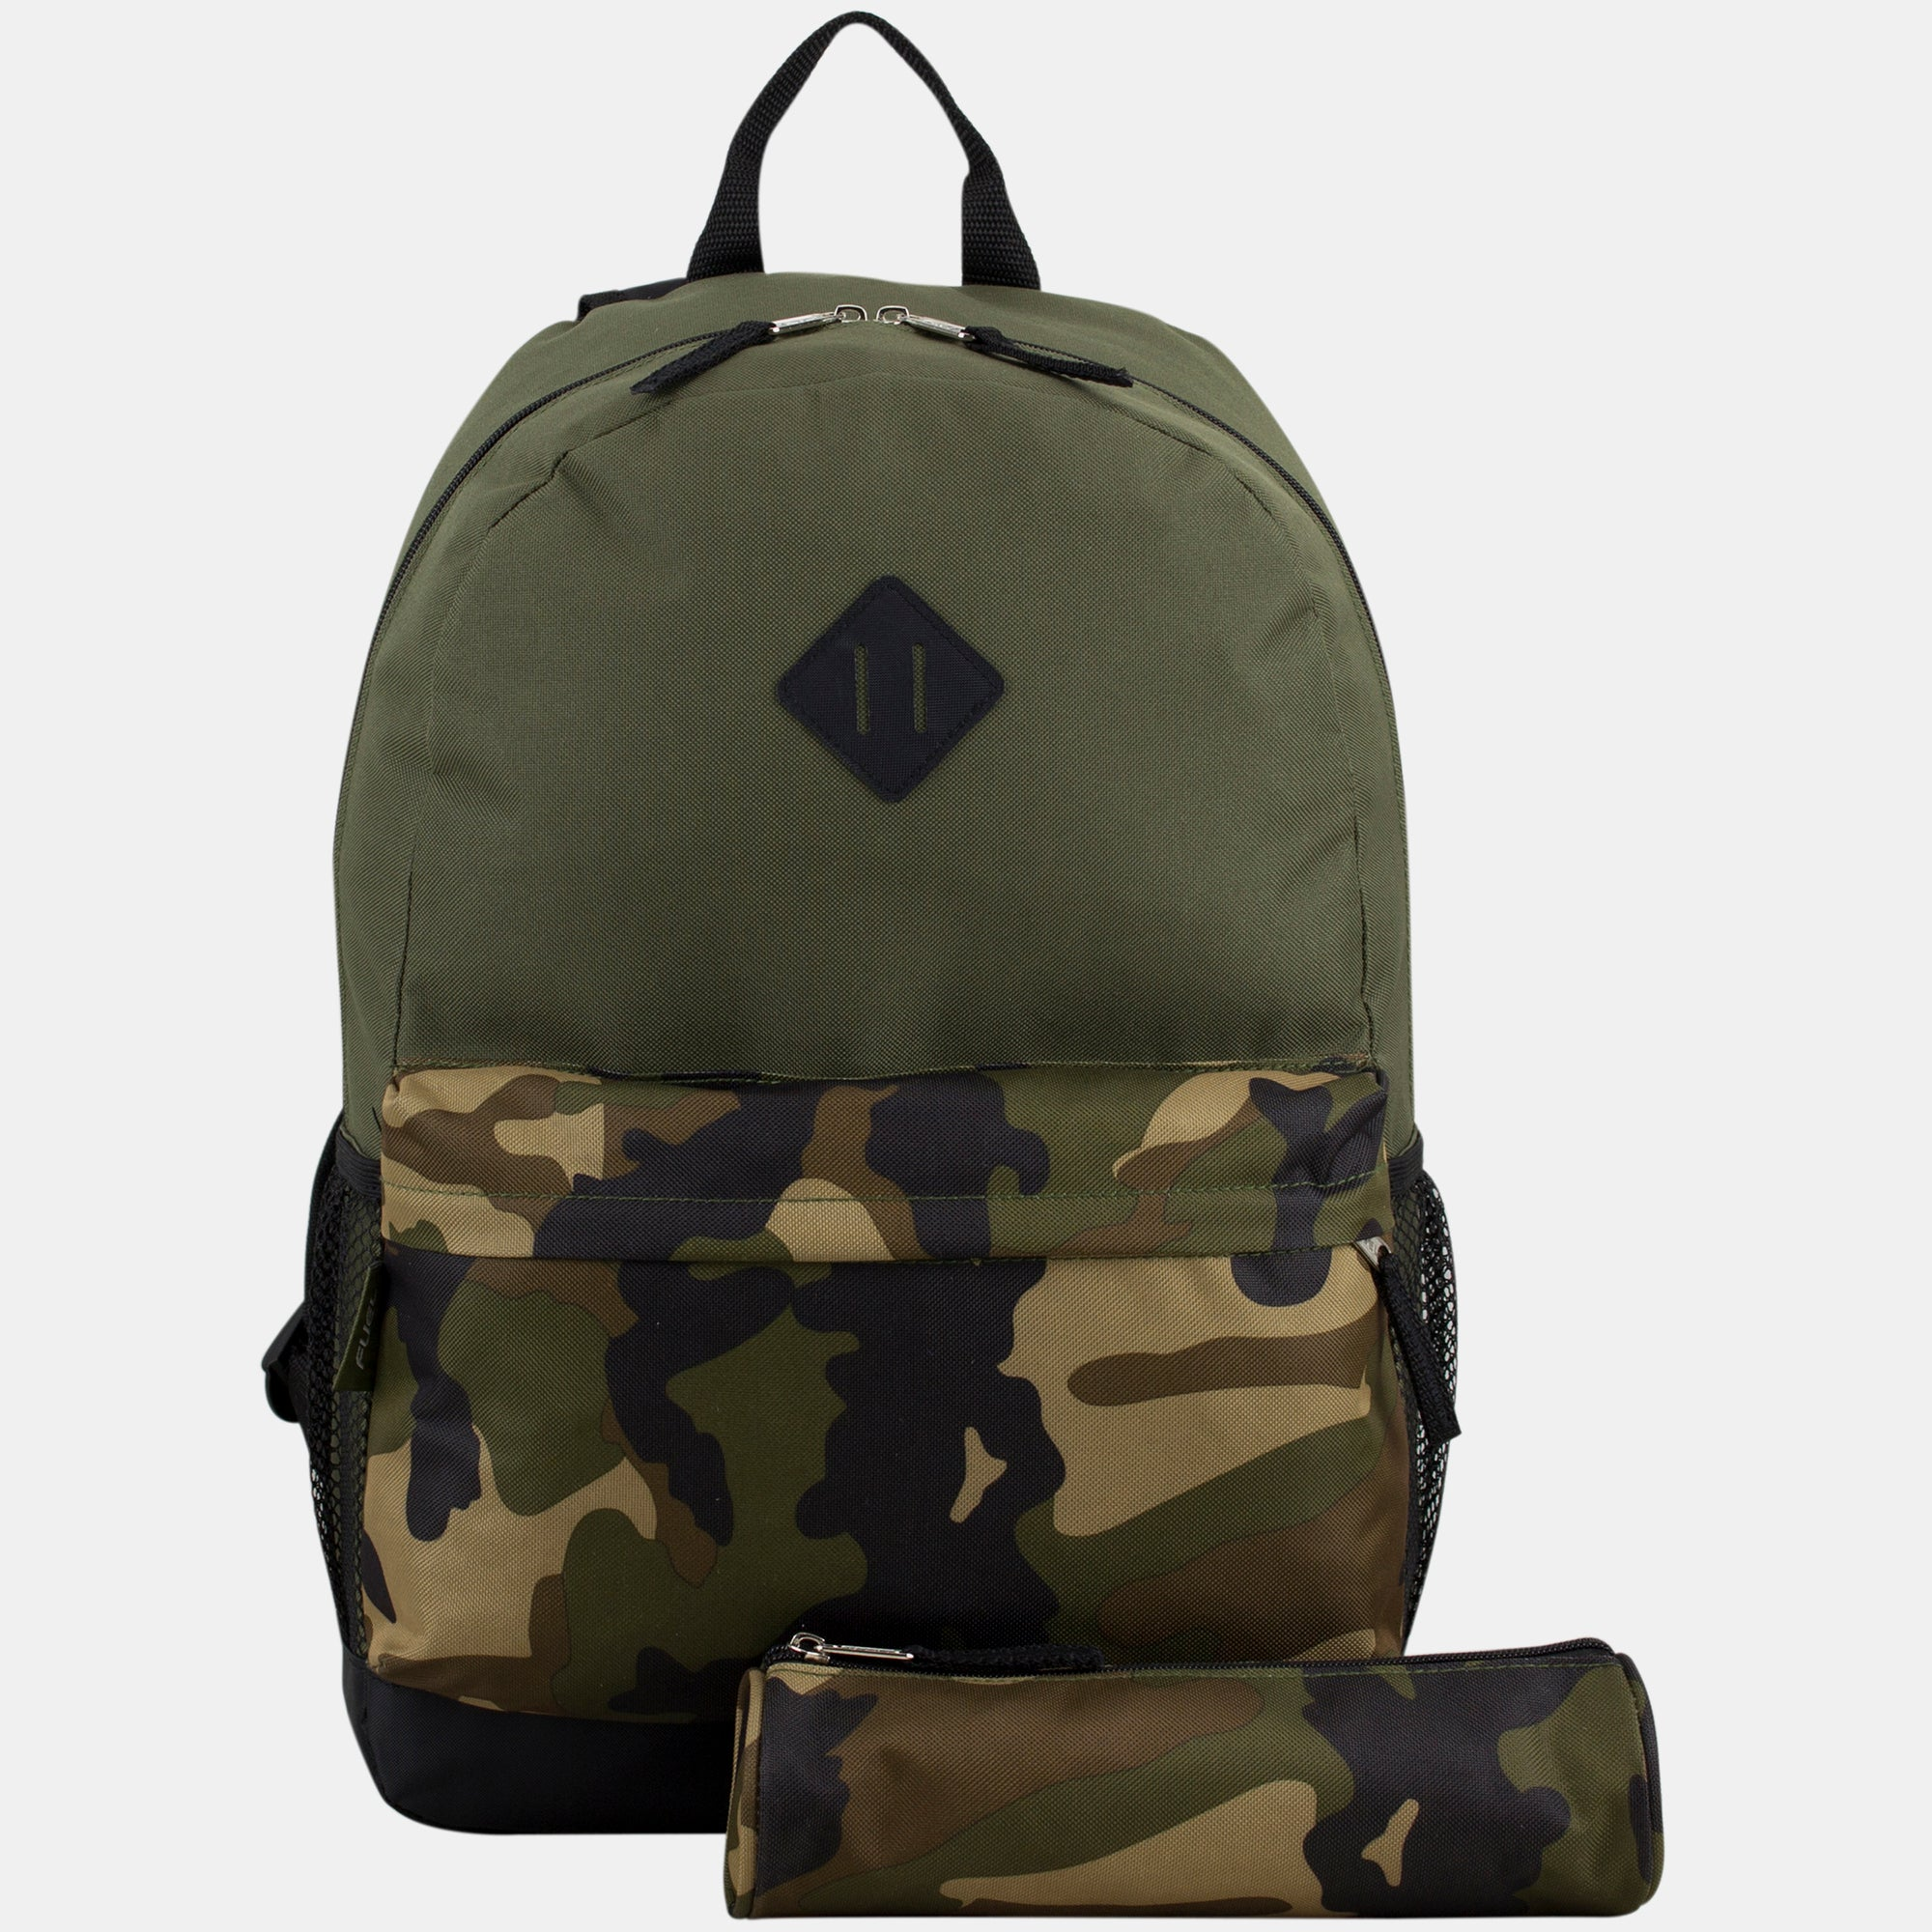 Eastsport Dome Backpack with FREE Pencil Case